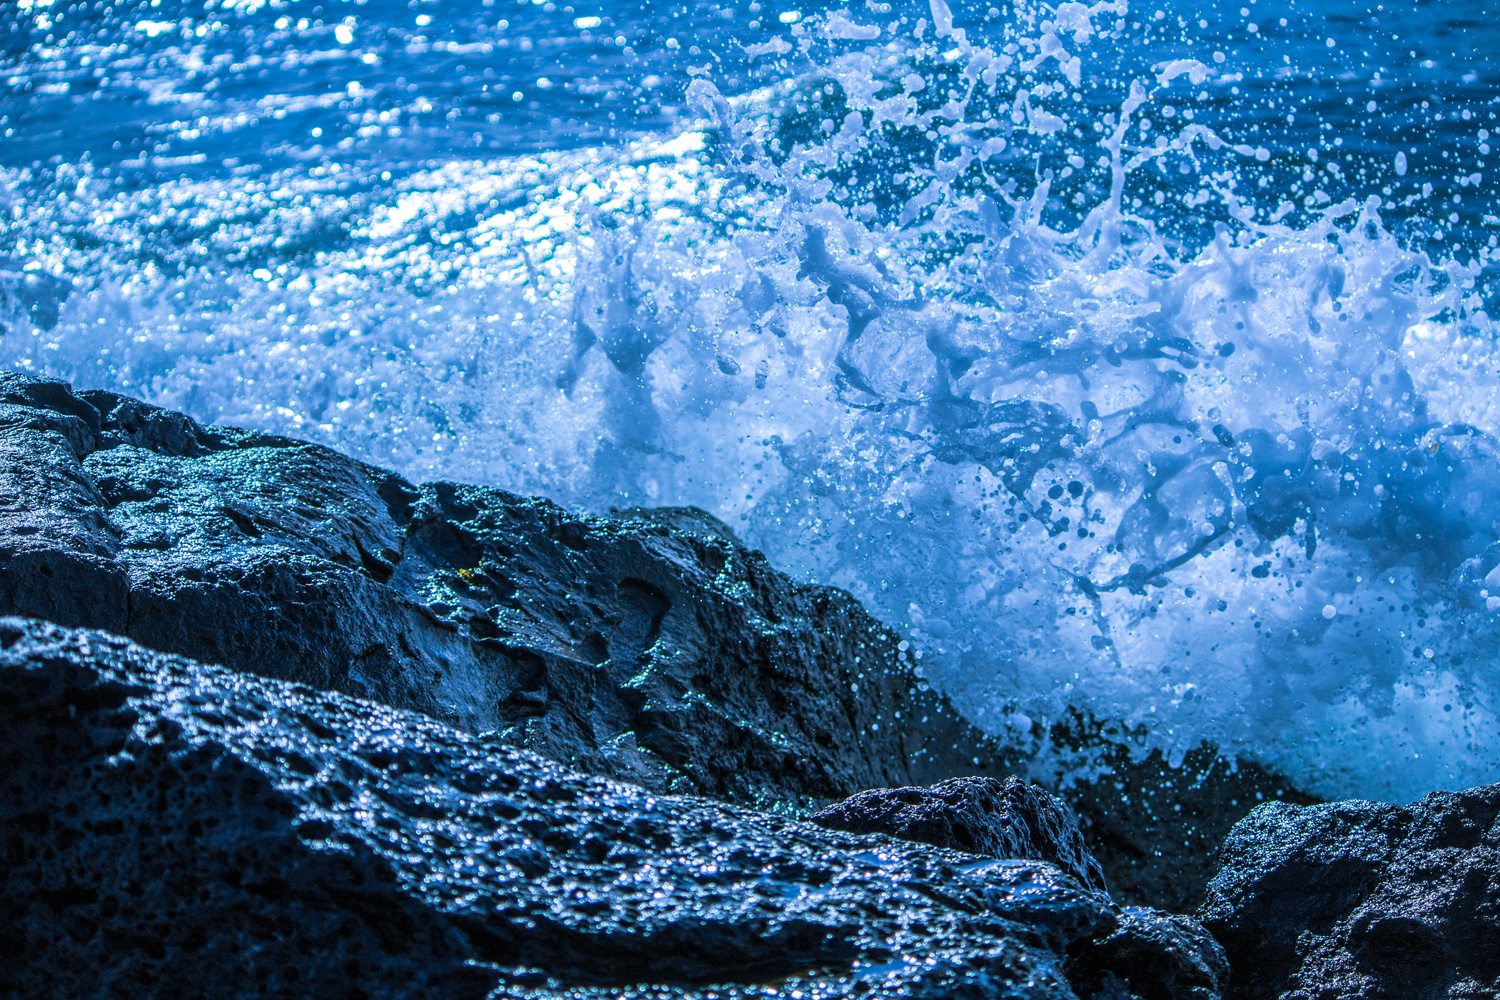 Untitled 1Water hold by Allan Watson